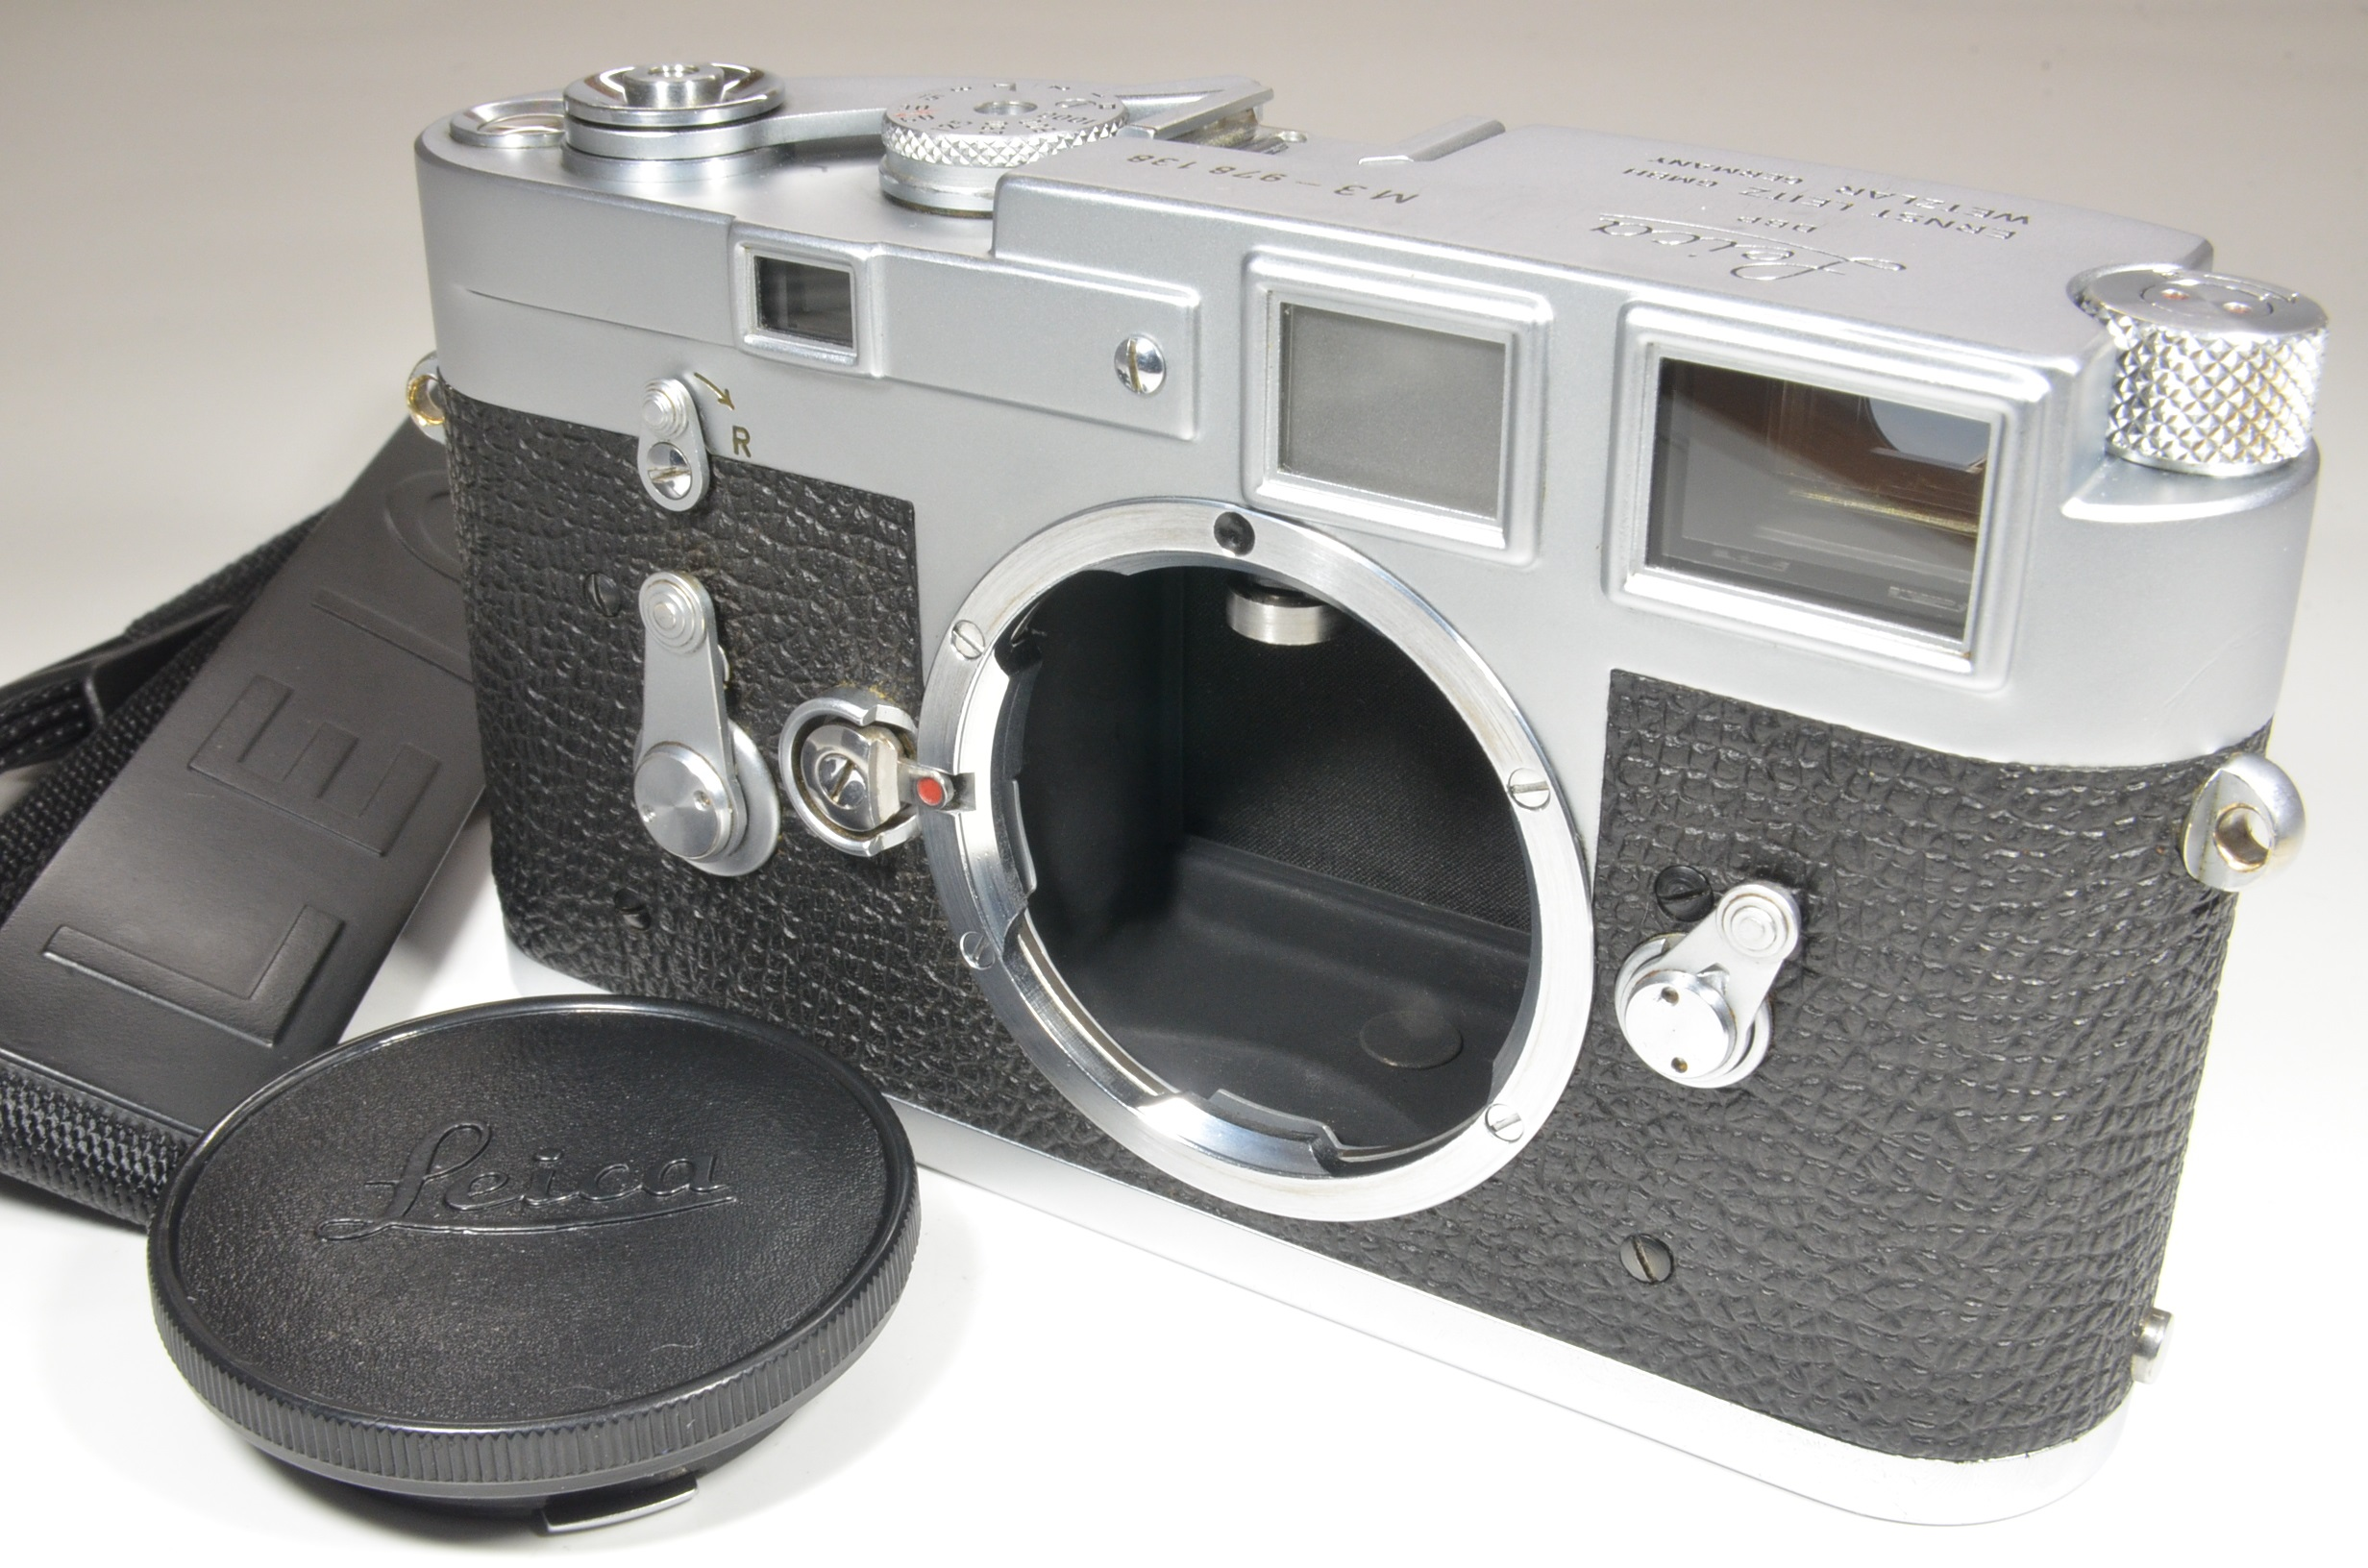 leica m3 single stroke year 1959 rangefinder s/n 978138 with strap